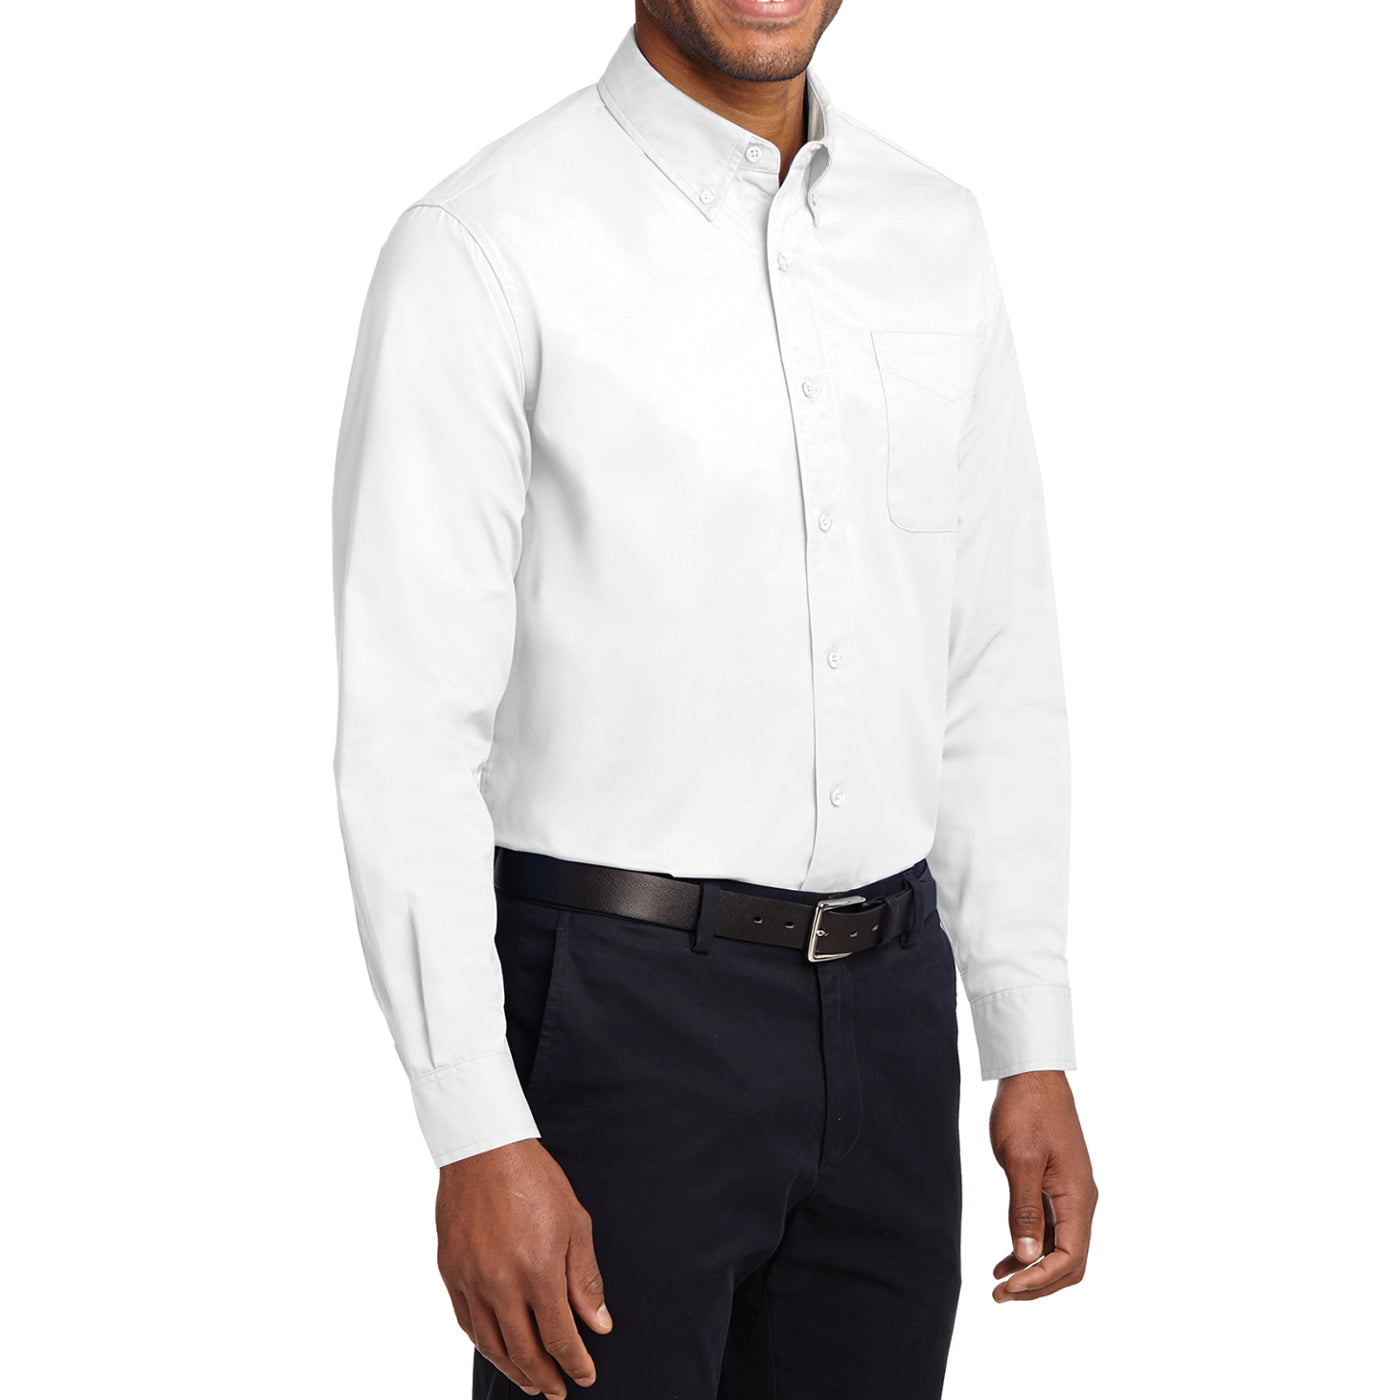 Men's Long Sleeve Easy Care Shirt - White/ Light Stone - Side